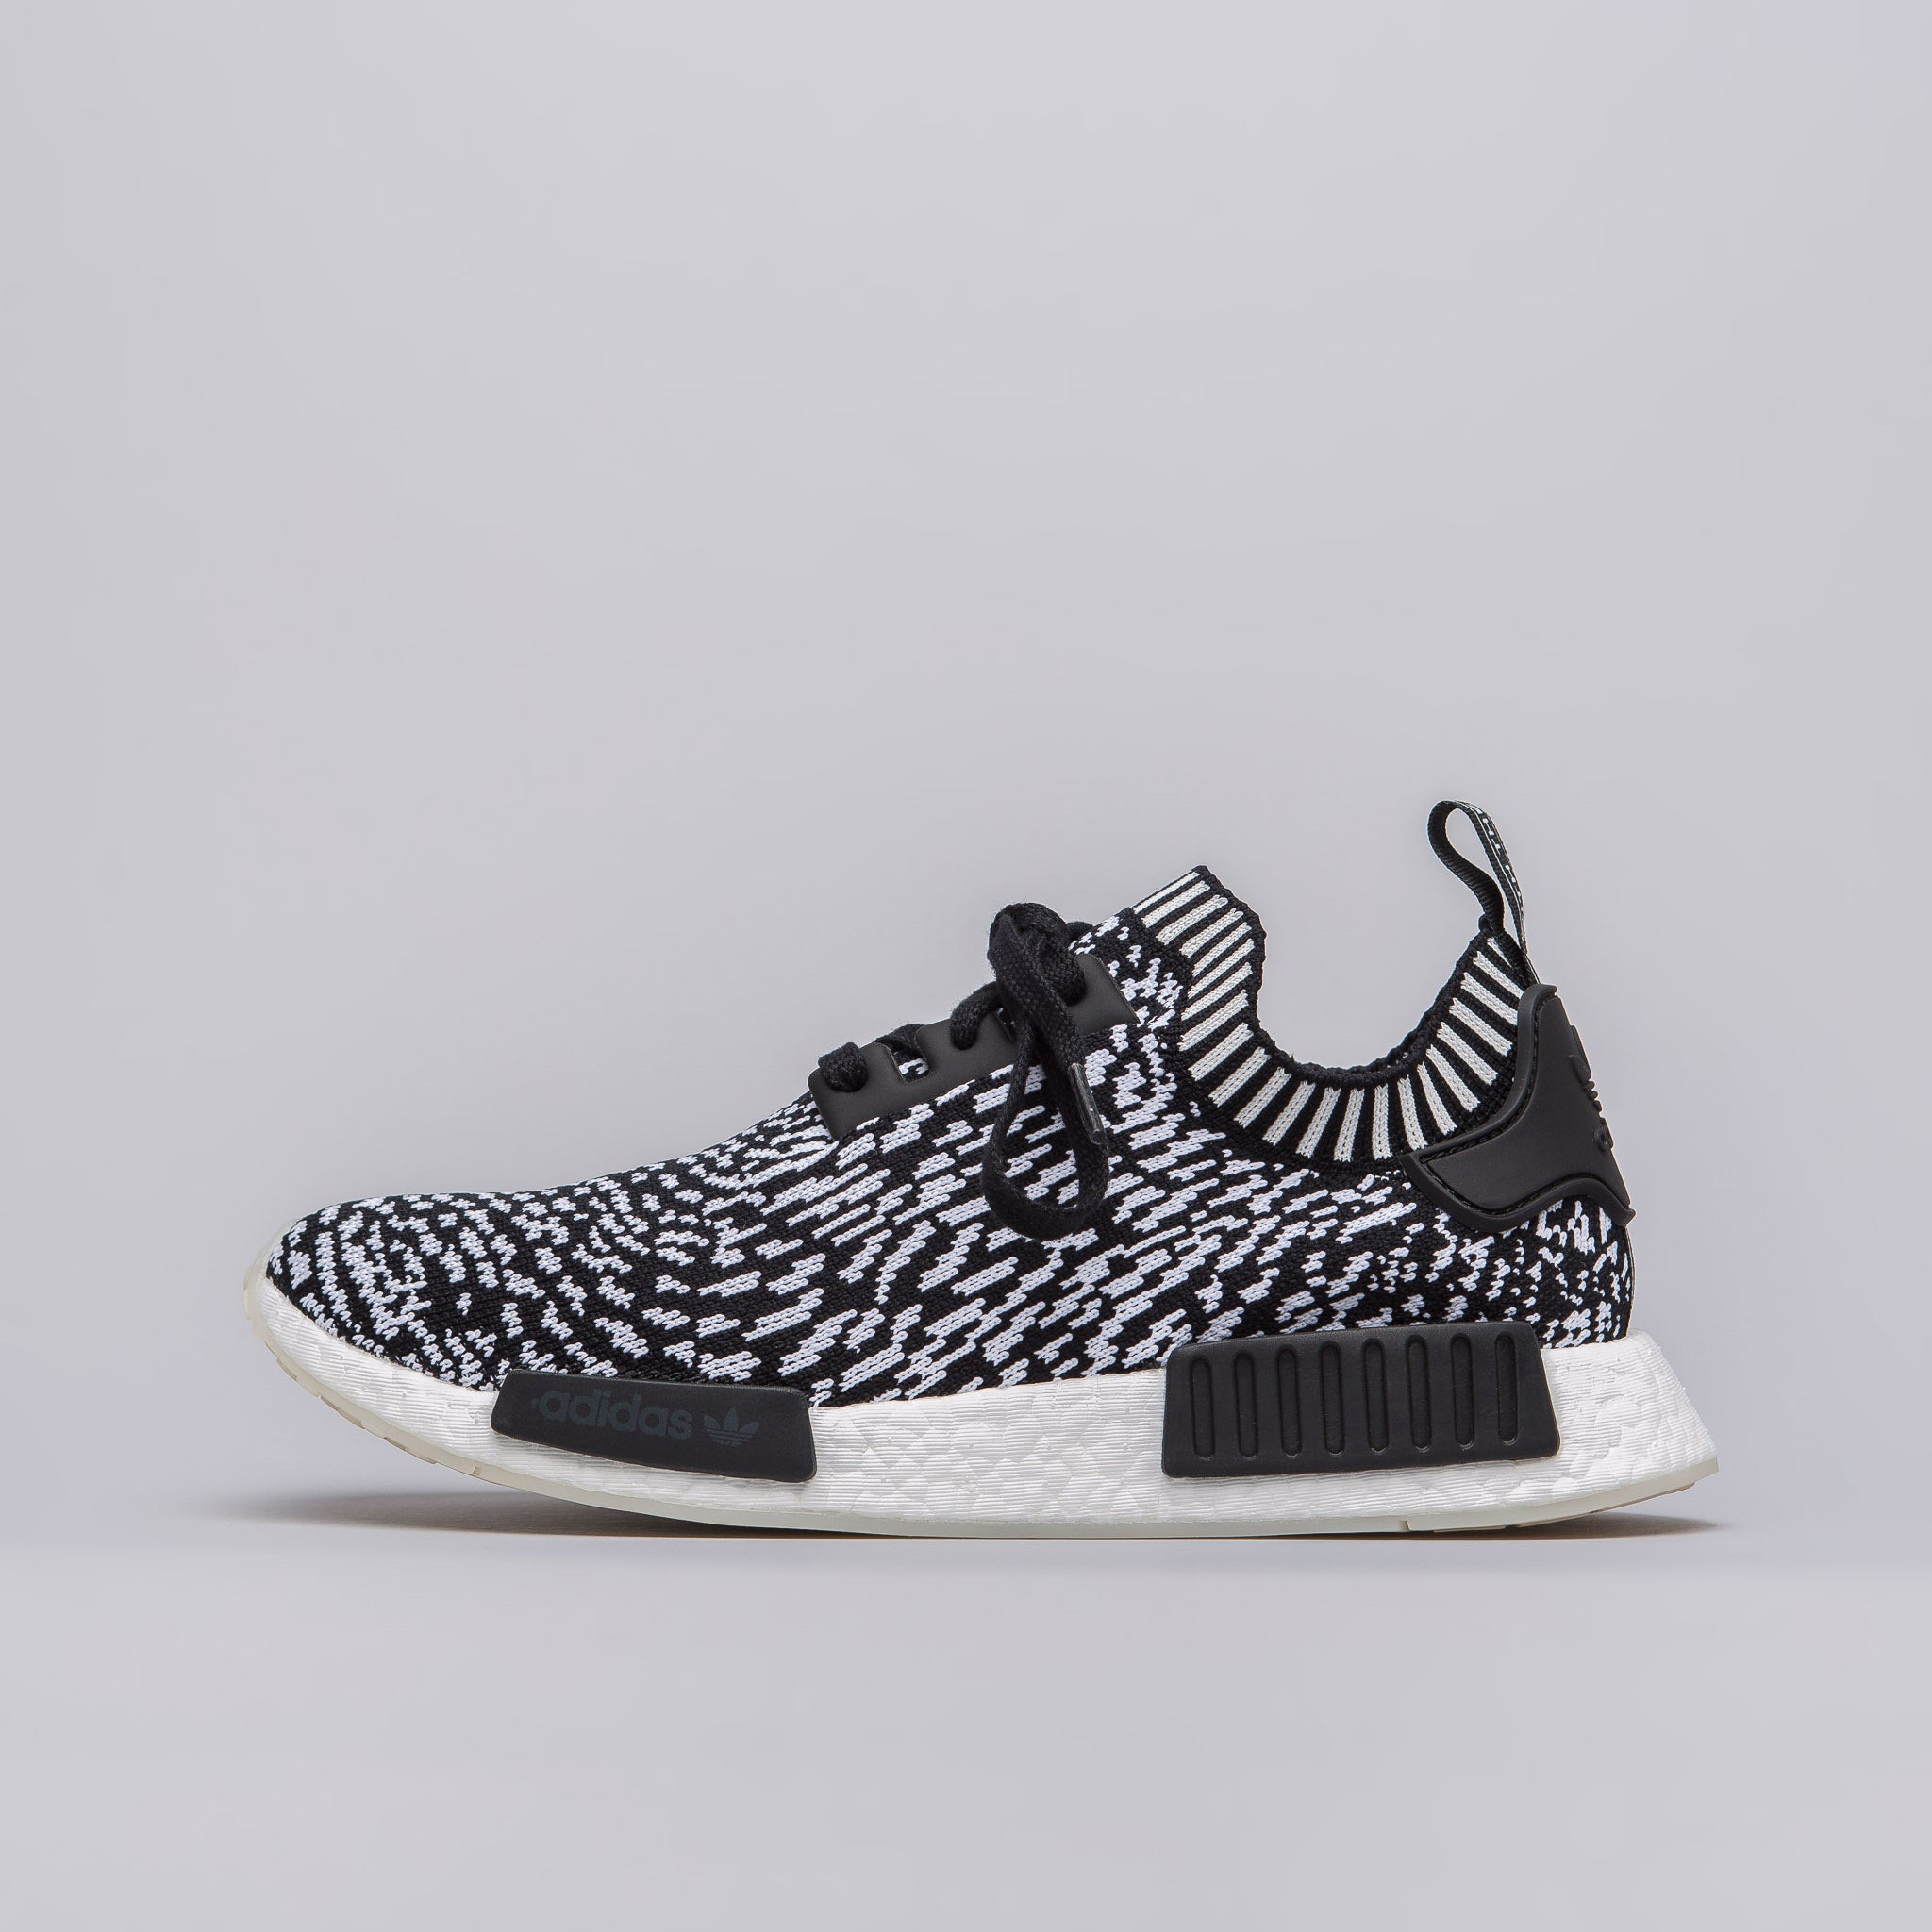 New Adidas NMD R1 PK Japan Black Primeknit Trainers Size UK 5